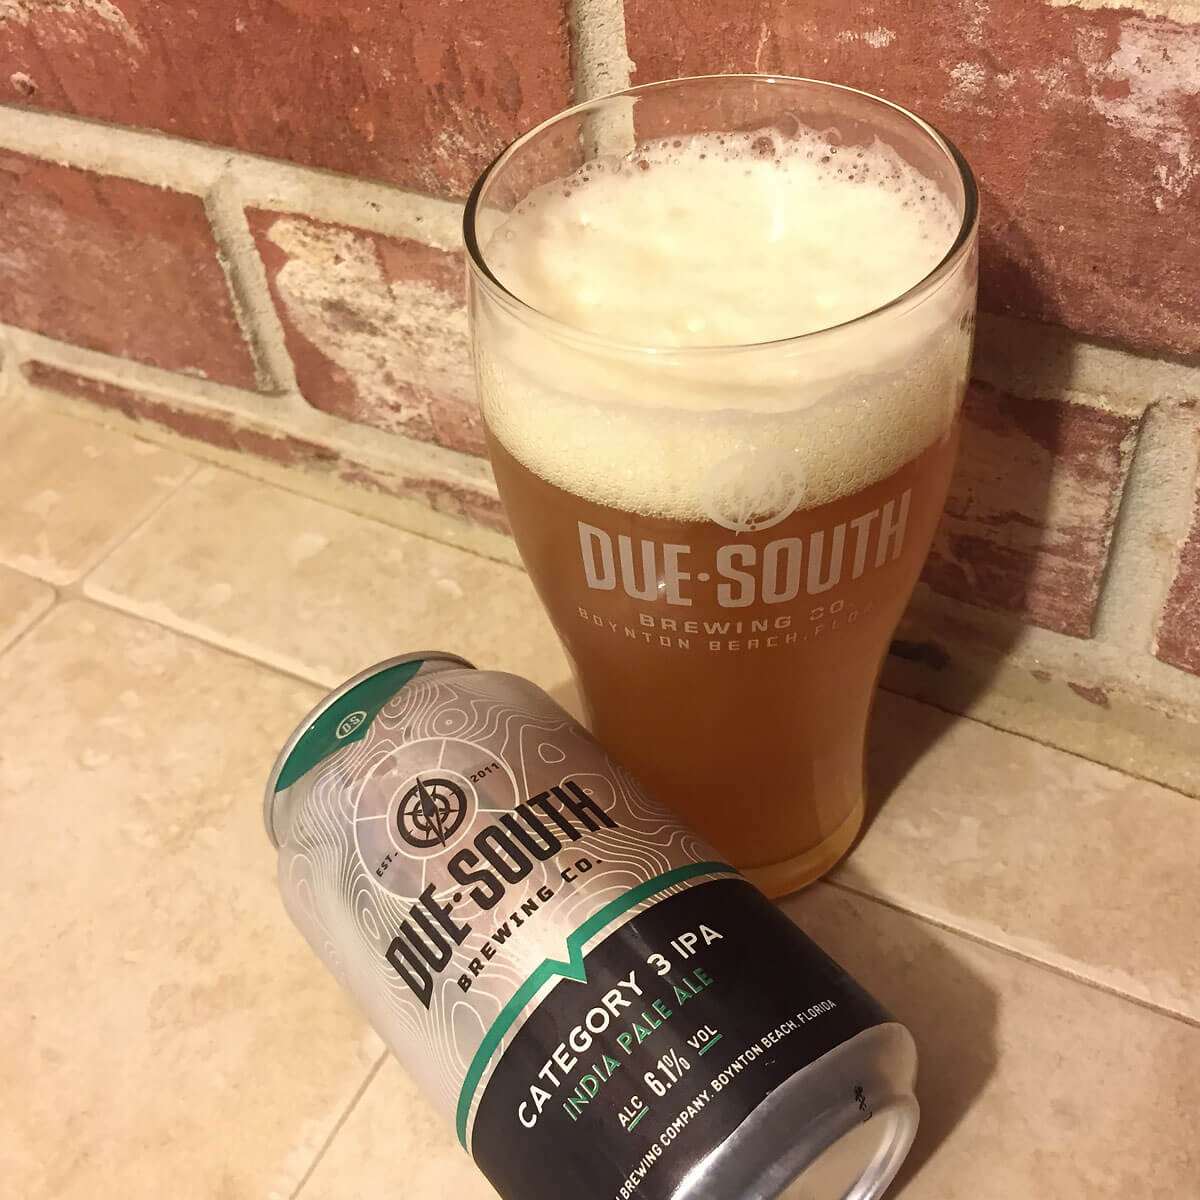 Category 3, an American IPA by Due South Brewing Co.